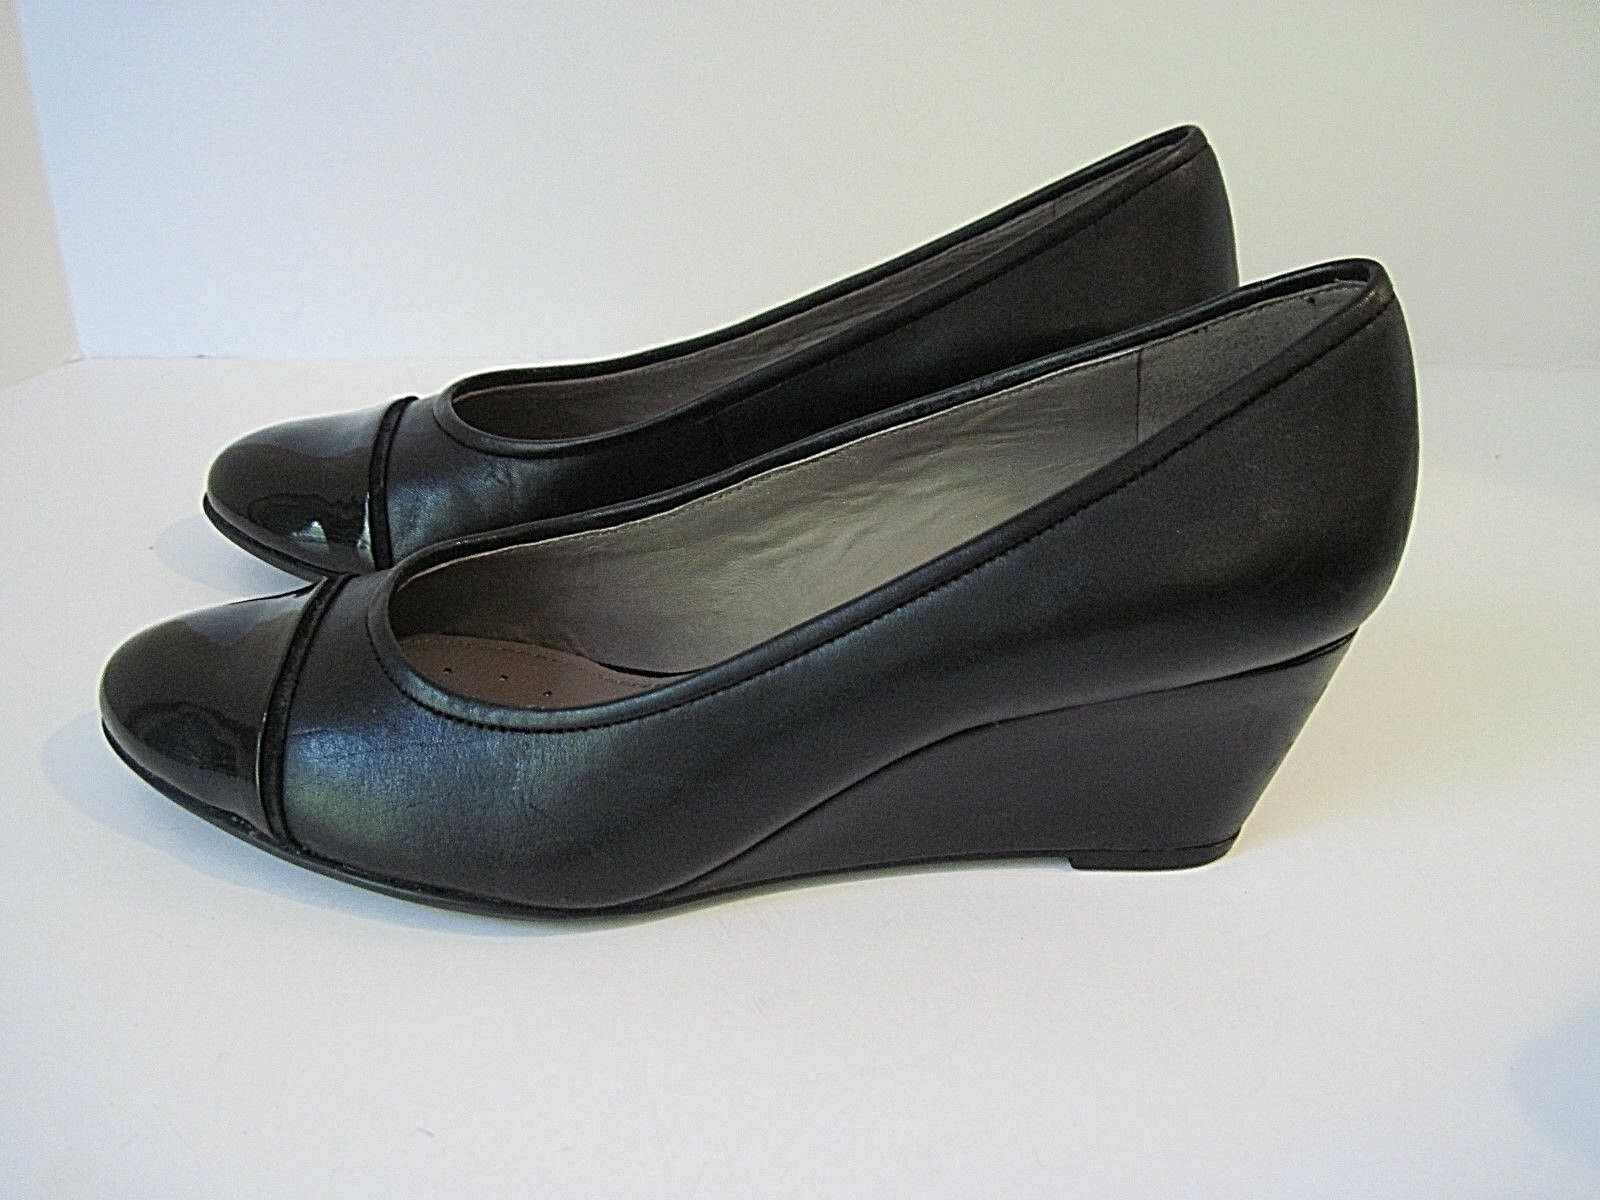 250 GEOX VENERE BLACK LEATHER PATENT FRONT WEDGE SHOES SIZE 38.5